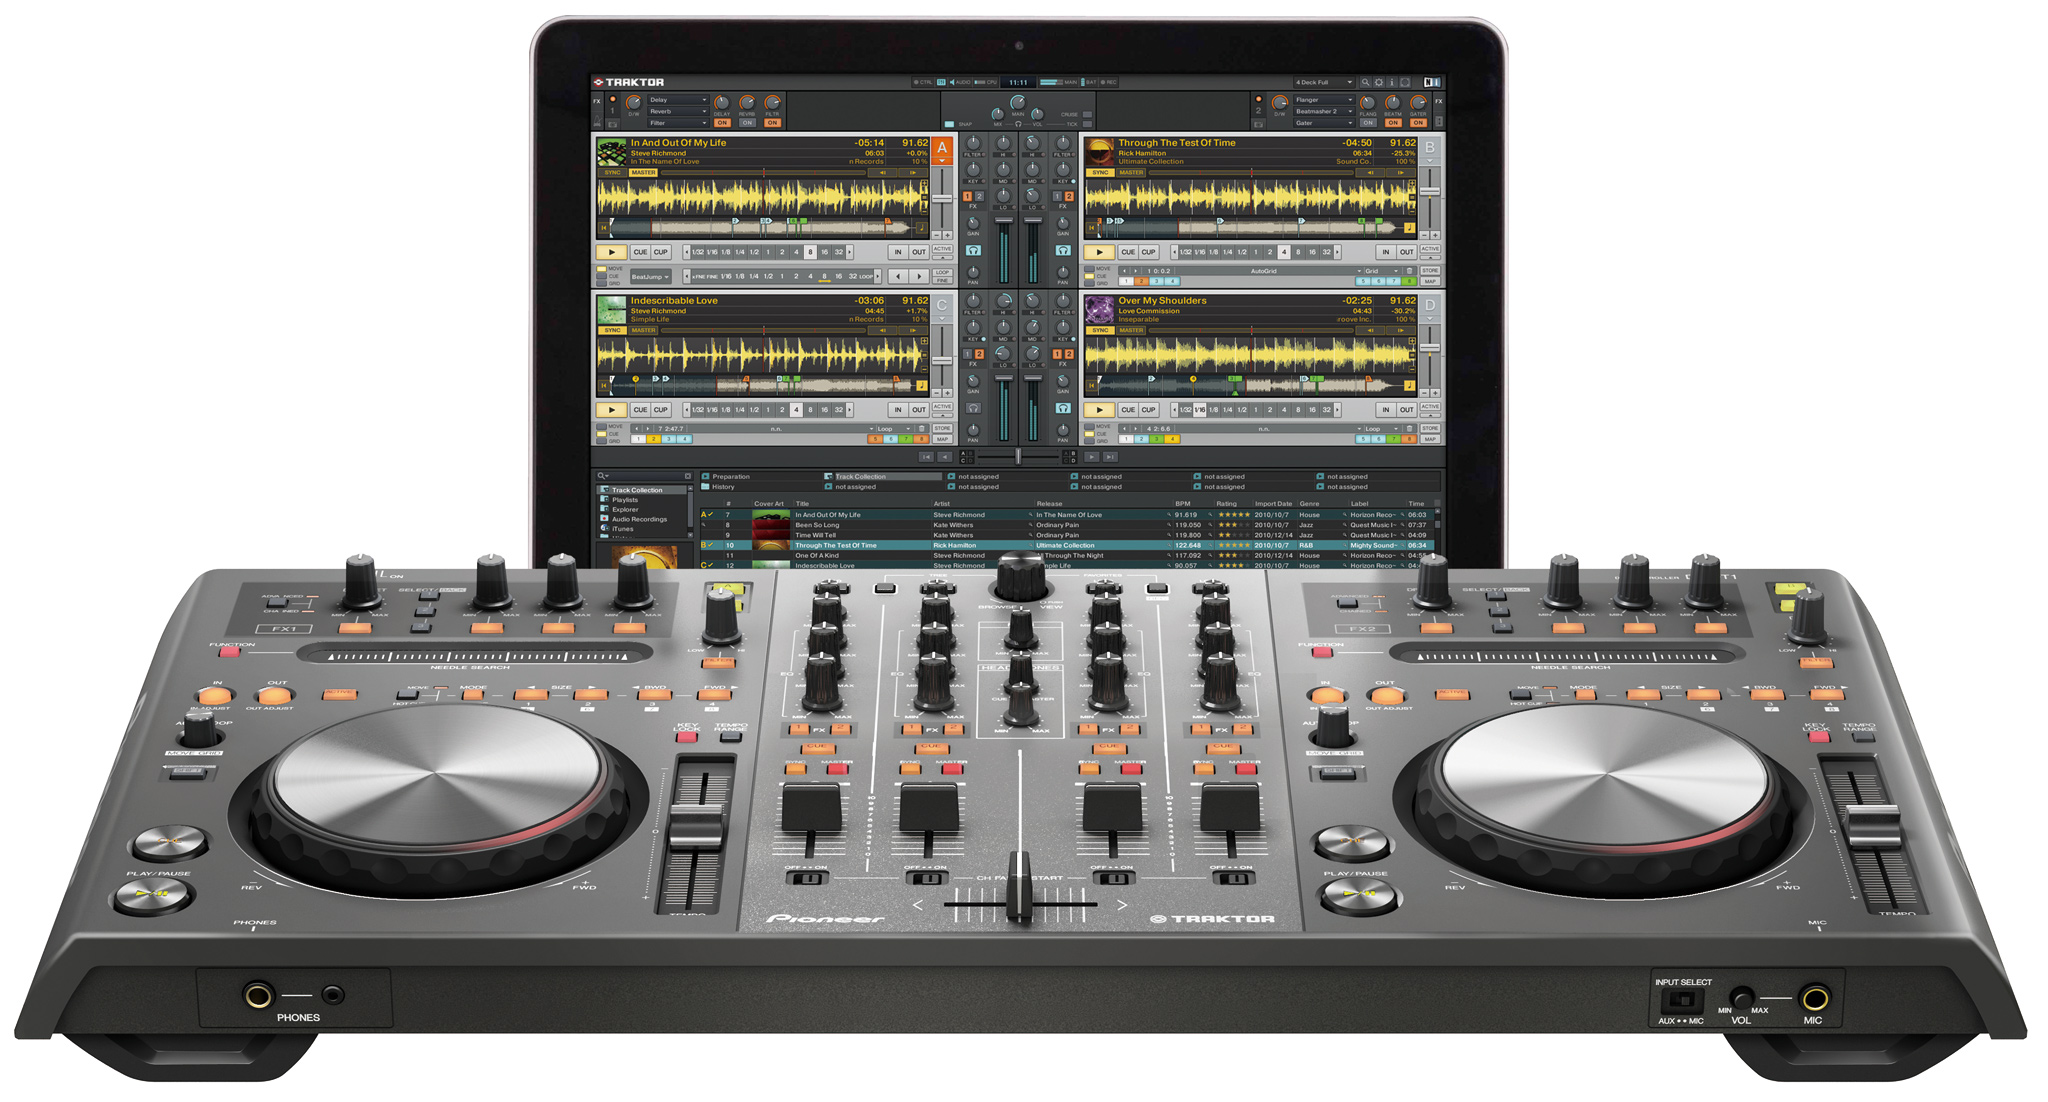 The Pioneer DDJ-T1 has no booth monitor output or VU meters.